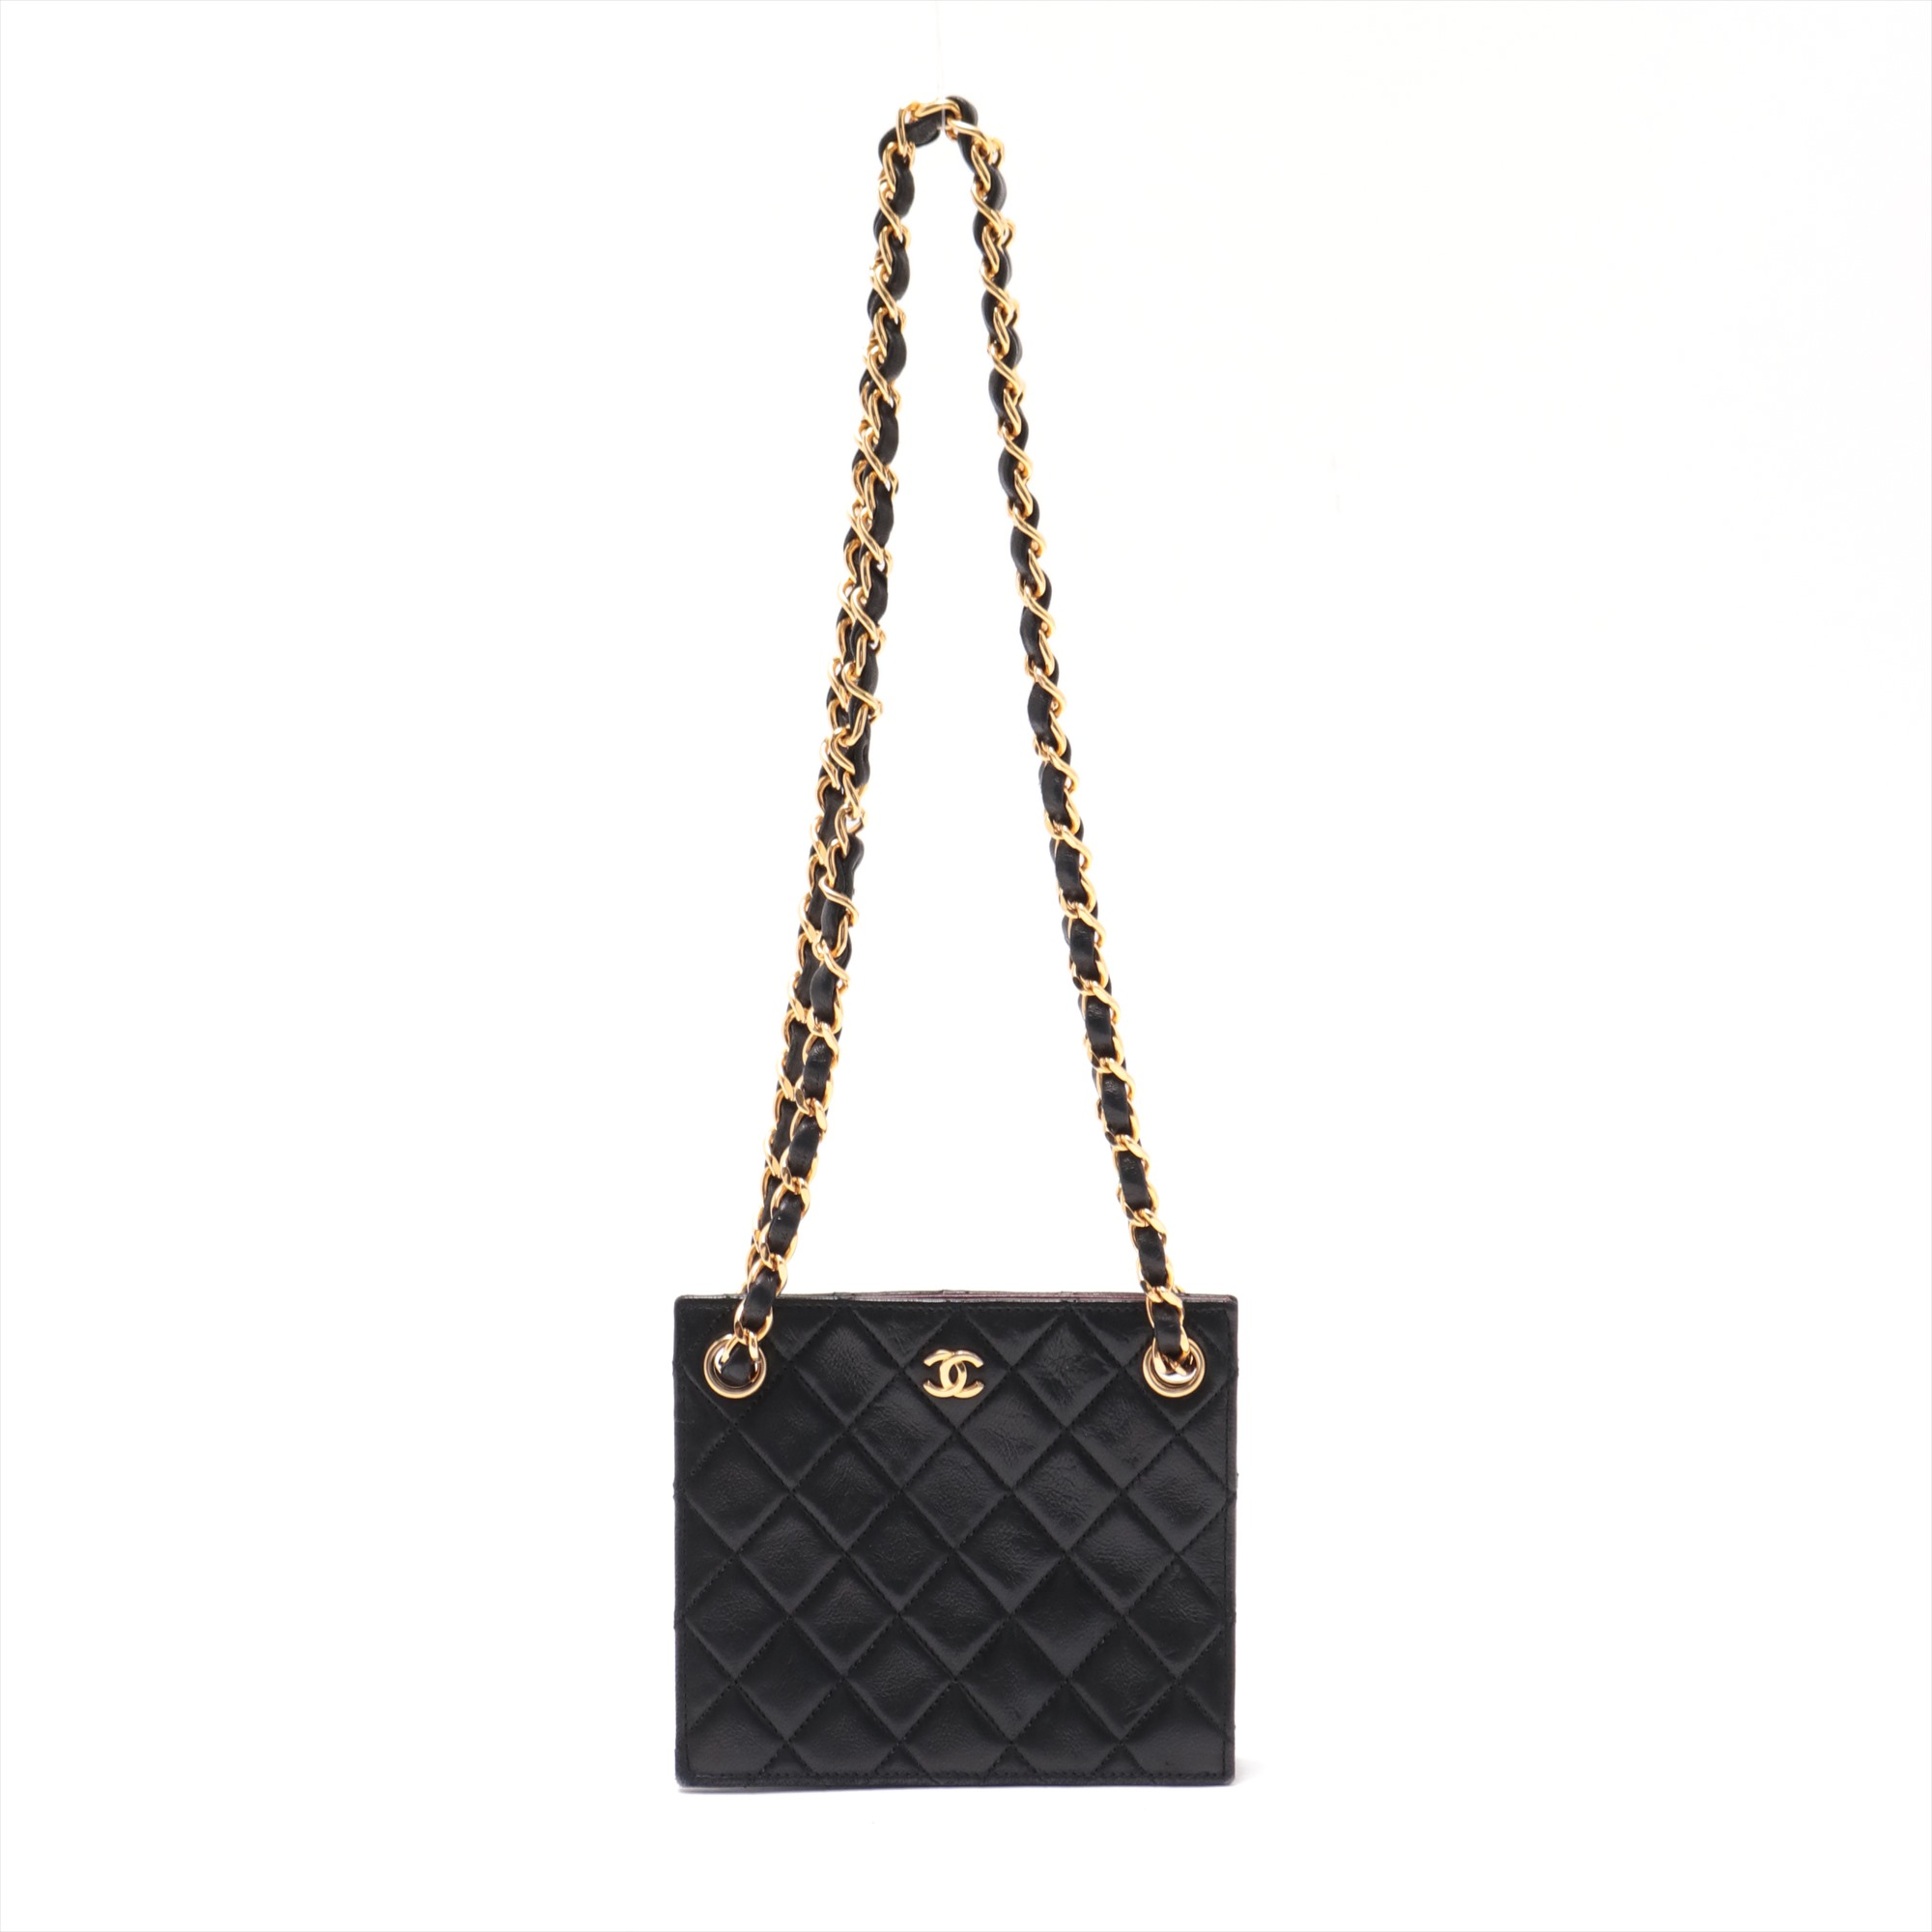 [Used goods] Chanel Matorasse lambskin chain shoulder bag mini shoulder double chain single flap Black Gold Hardware 0 Series